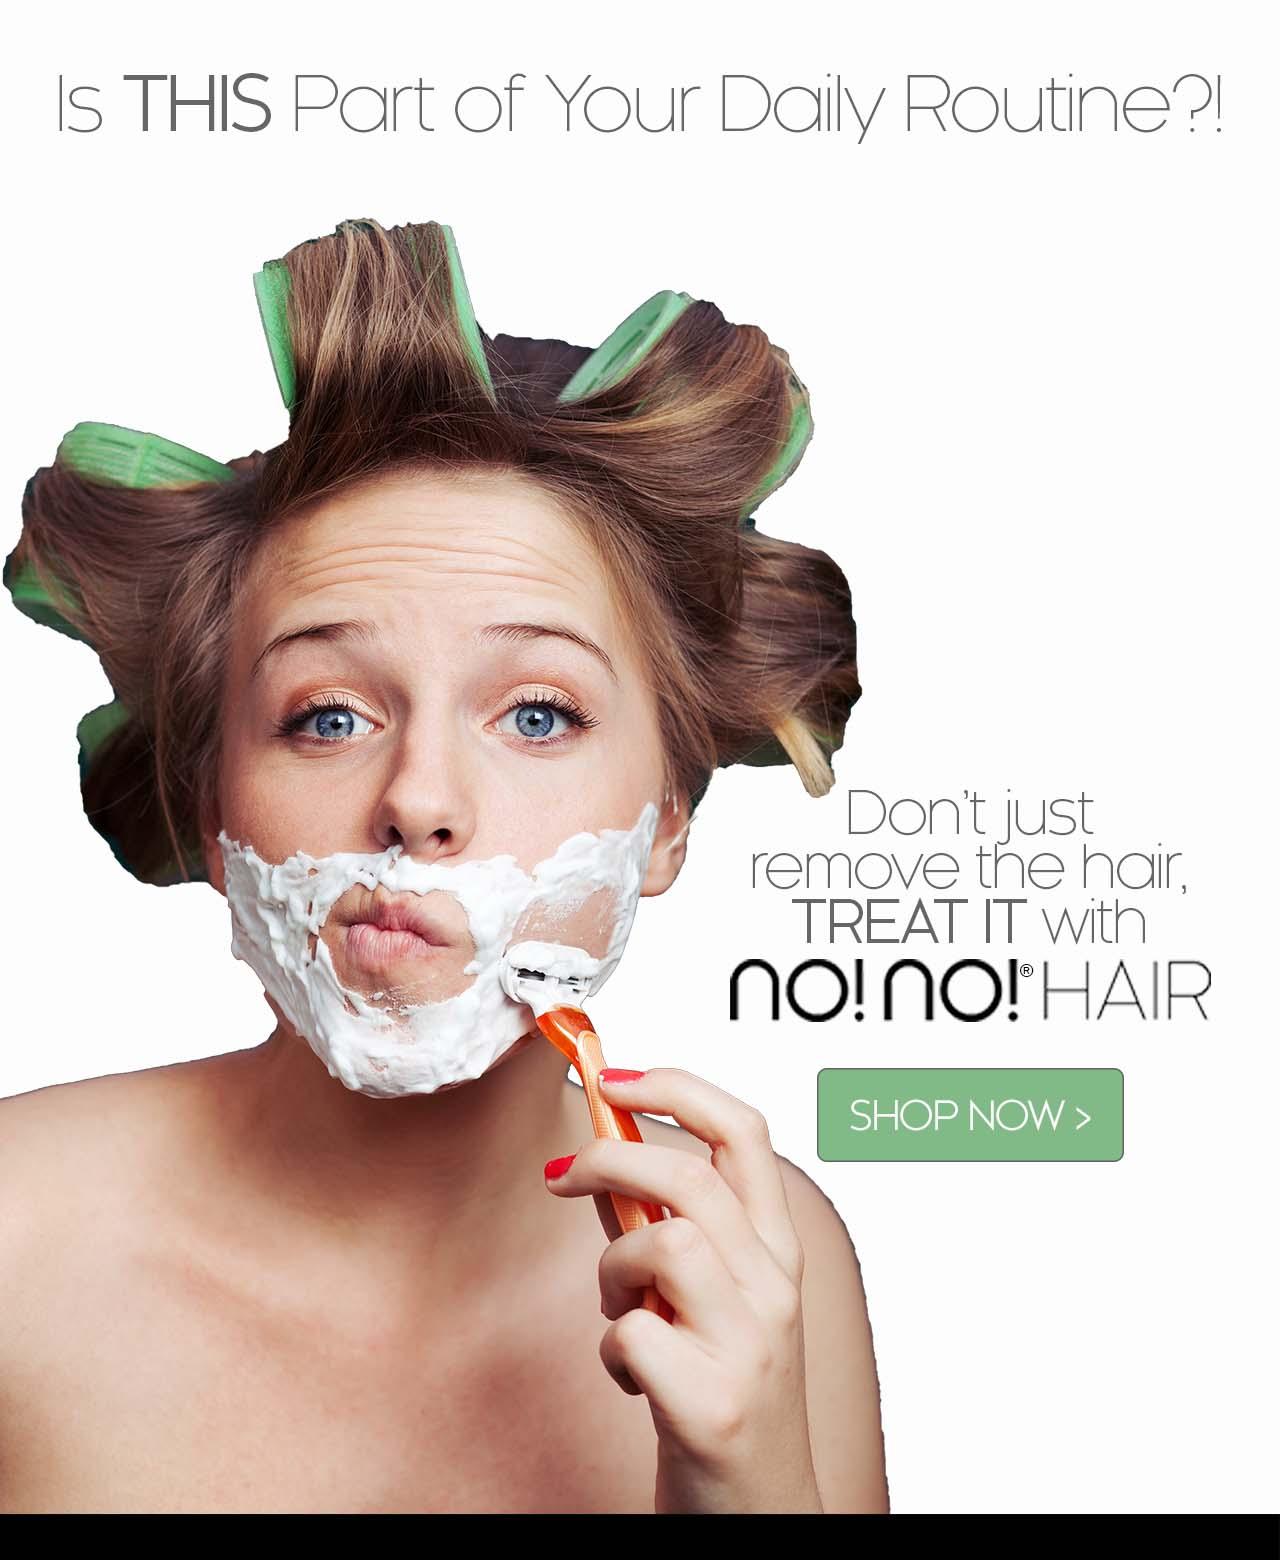 Is this part of your daily routine? Don't just remove the hair, treat it with no!no! hair